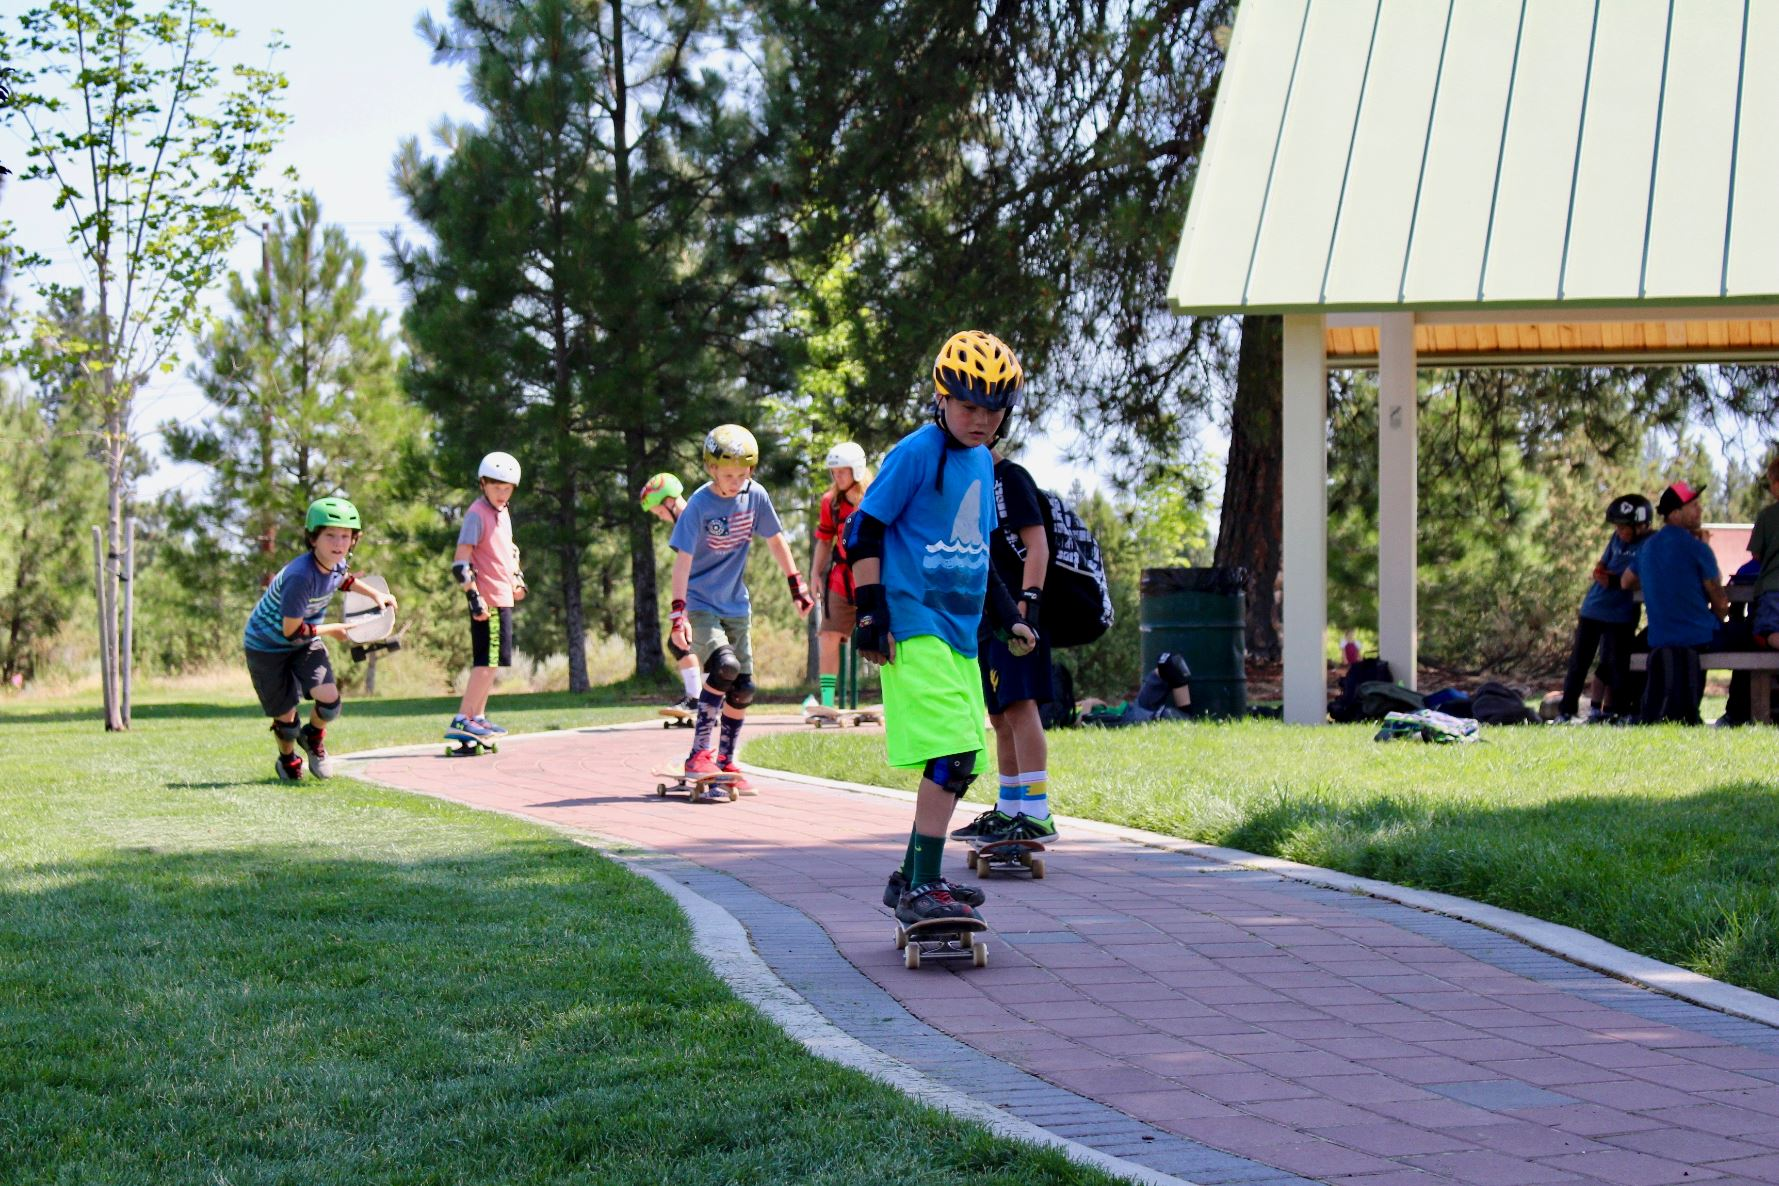 Skateboarding at Juniper Park in Bend Oregon